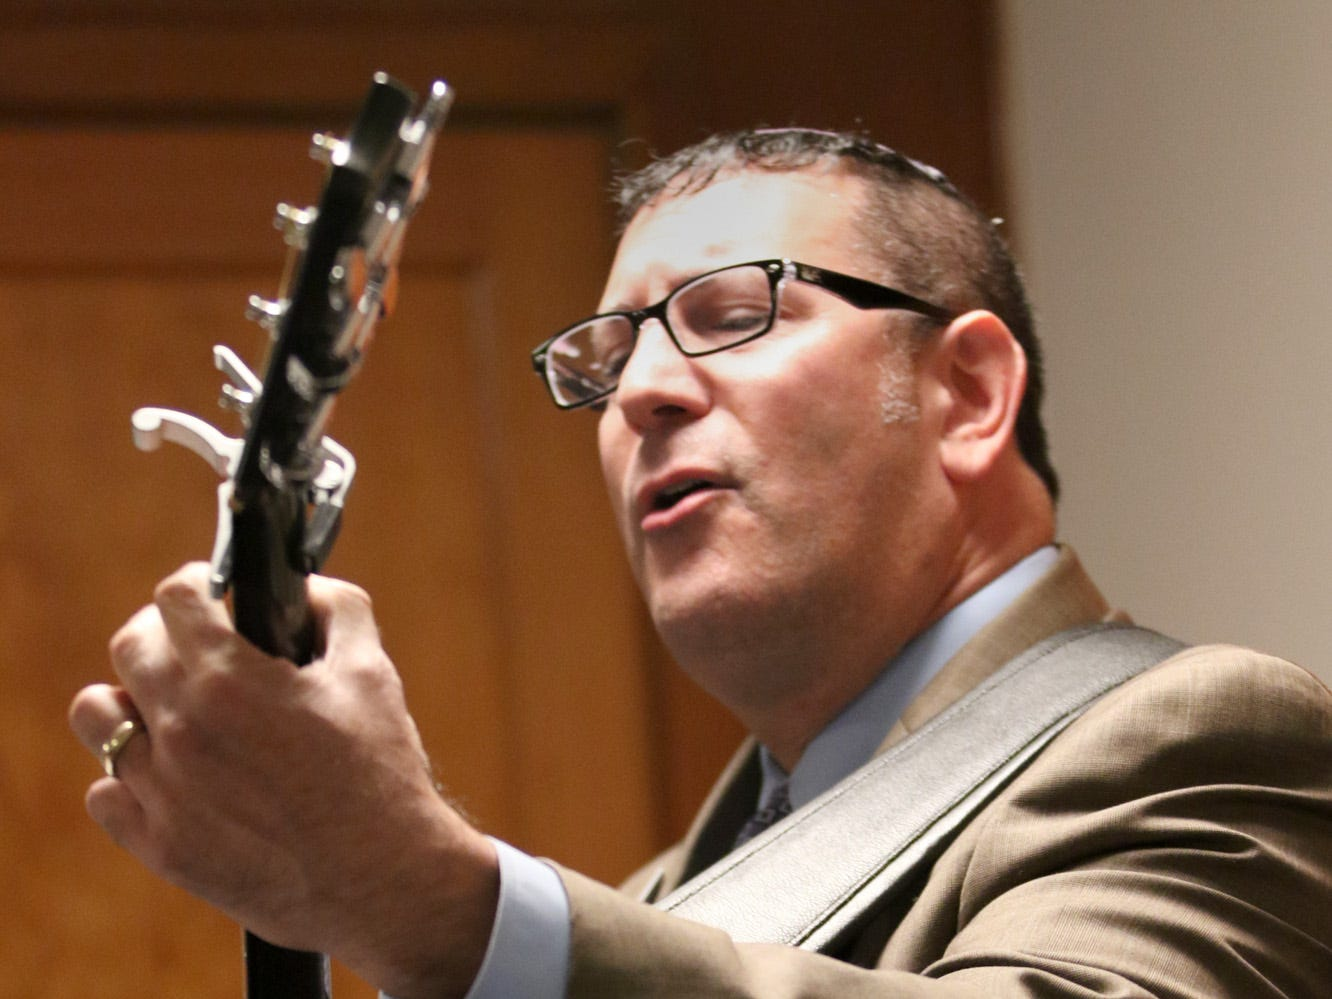 Rabbi Mitch Delcau leads the congregation in song during the memorial.   The Beth Hatikvah (House of Hope) Synagogue in Bremerton held a memorial service for the Tree of Life Synagogue shootings Tuesday night in Bremerton.